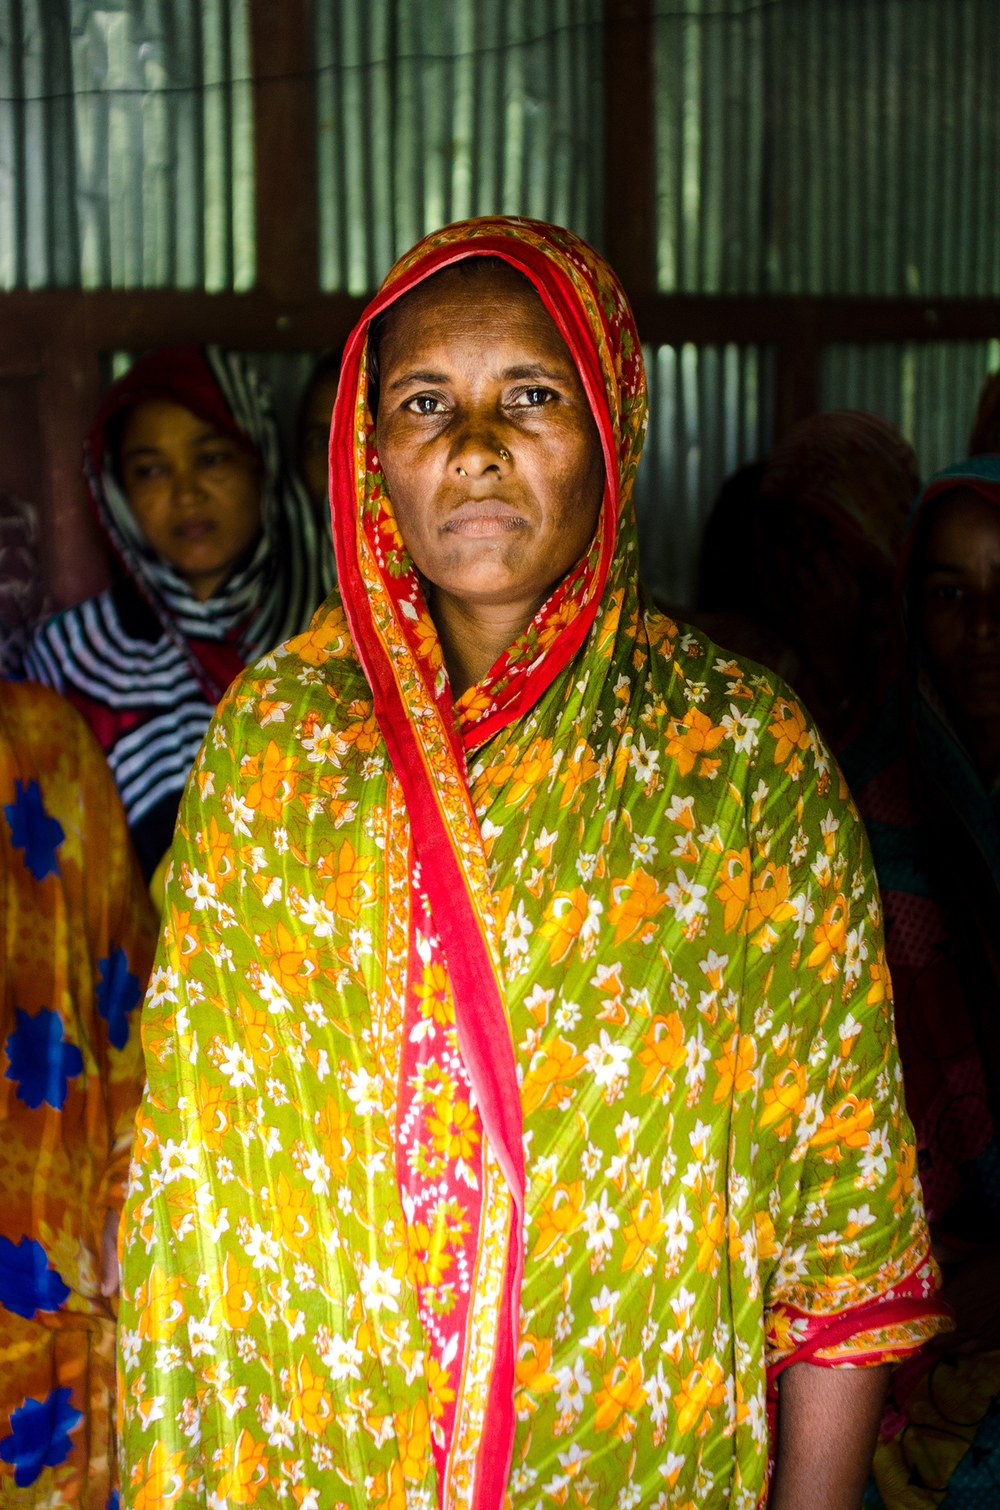 One of the landless women poses for a portrait. Noakhali, Bangladesh. 2013.